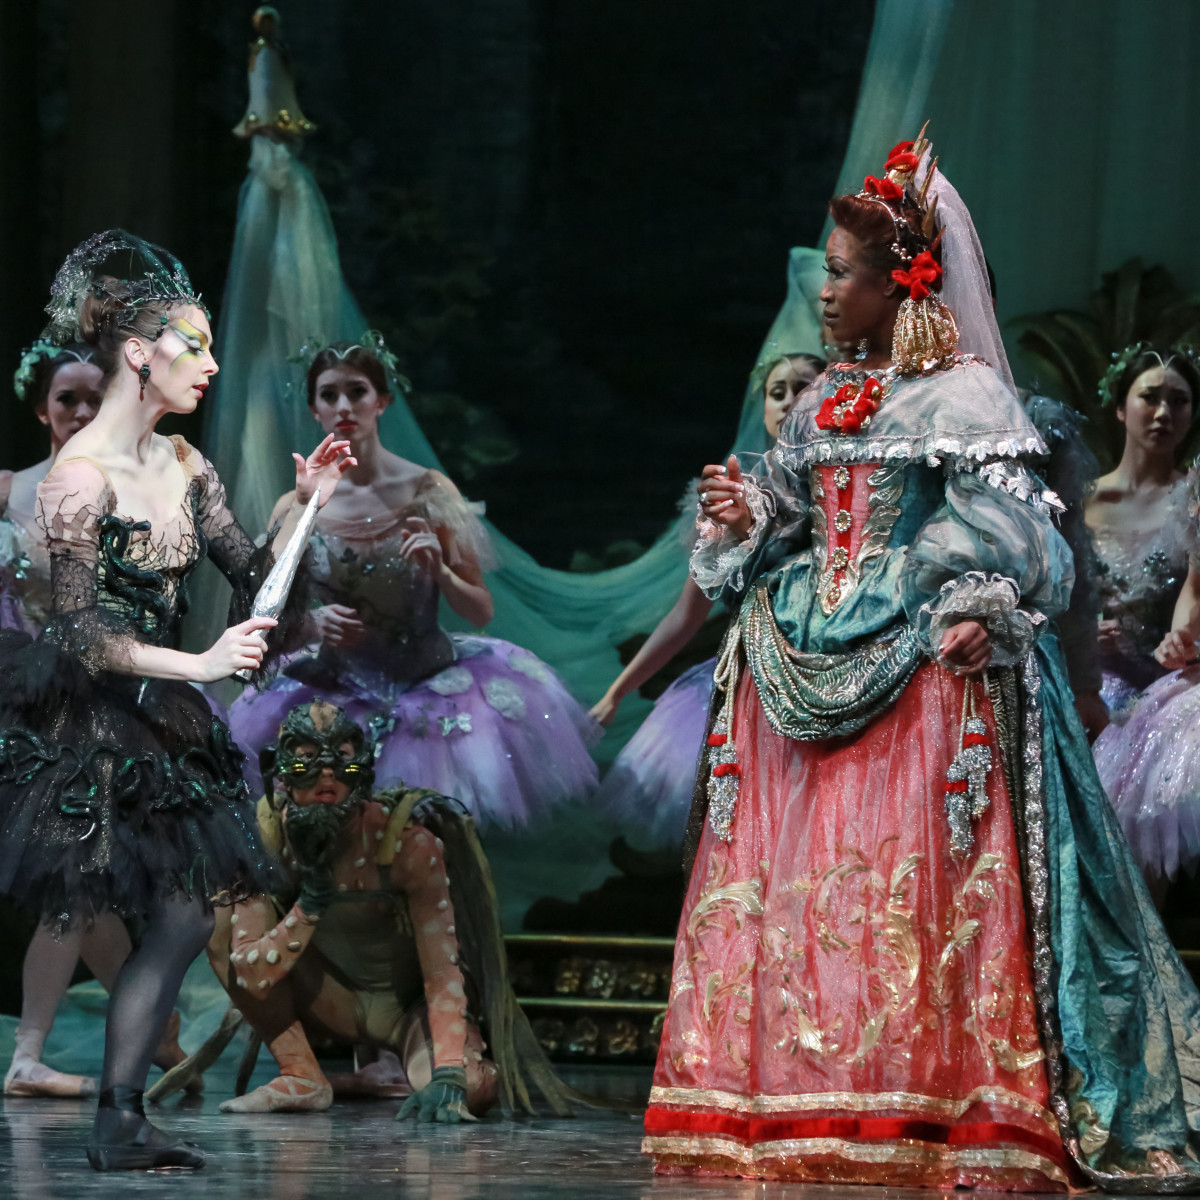 Houston Ballet principal Melody Mennite as Carabosse and former dancer Lauren Anderson as The Queen in Ben Stevenson's The Sleeping Beauty